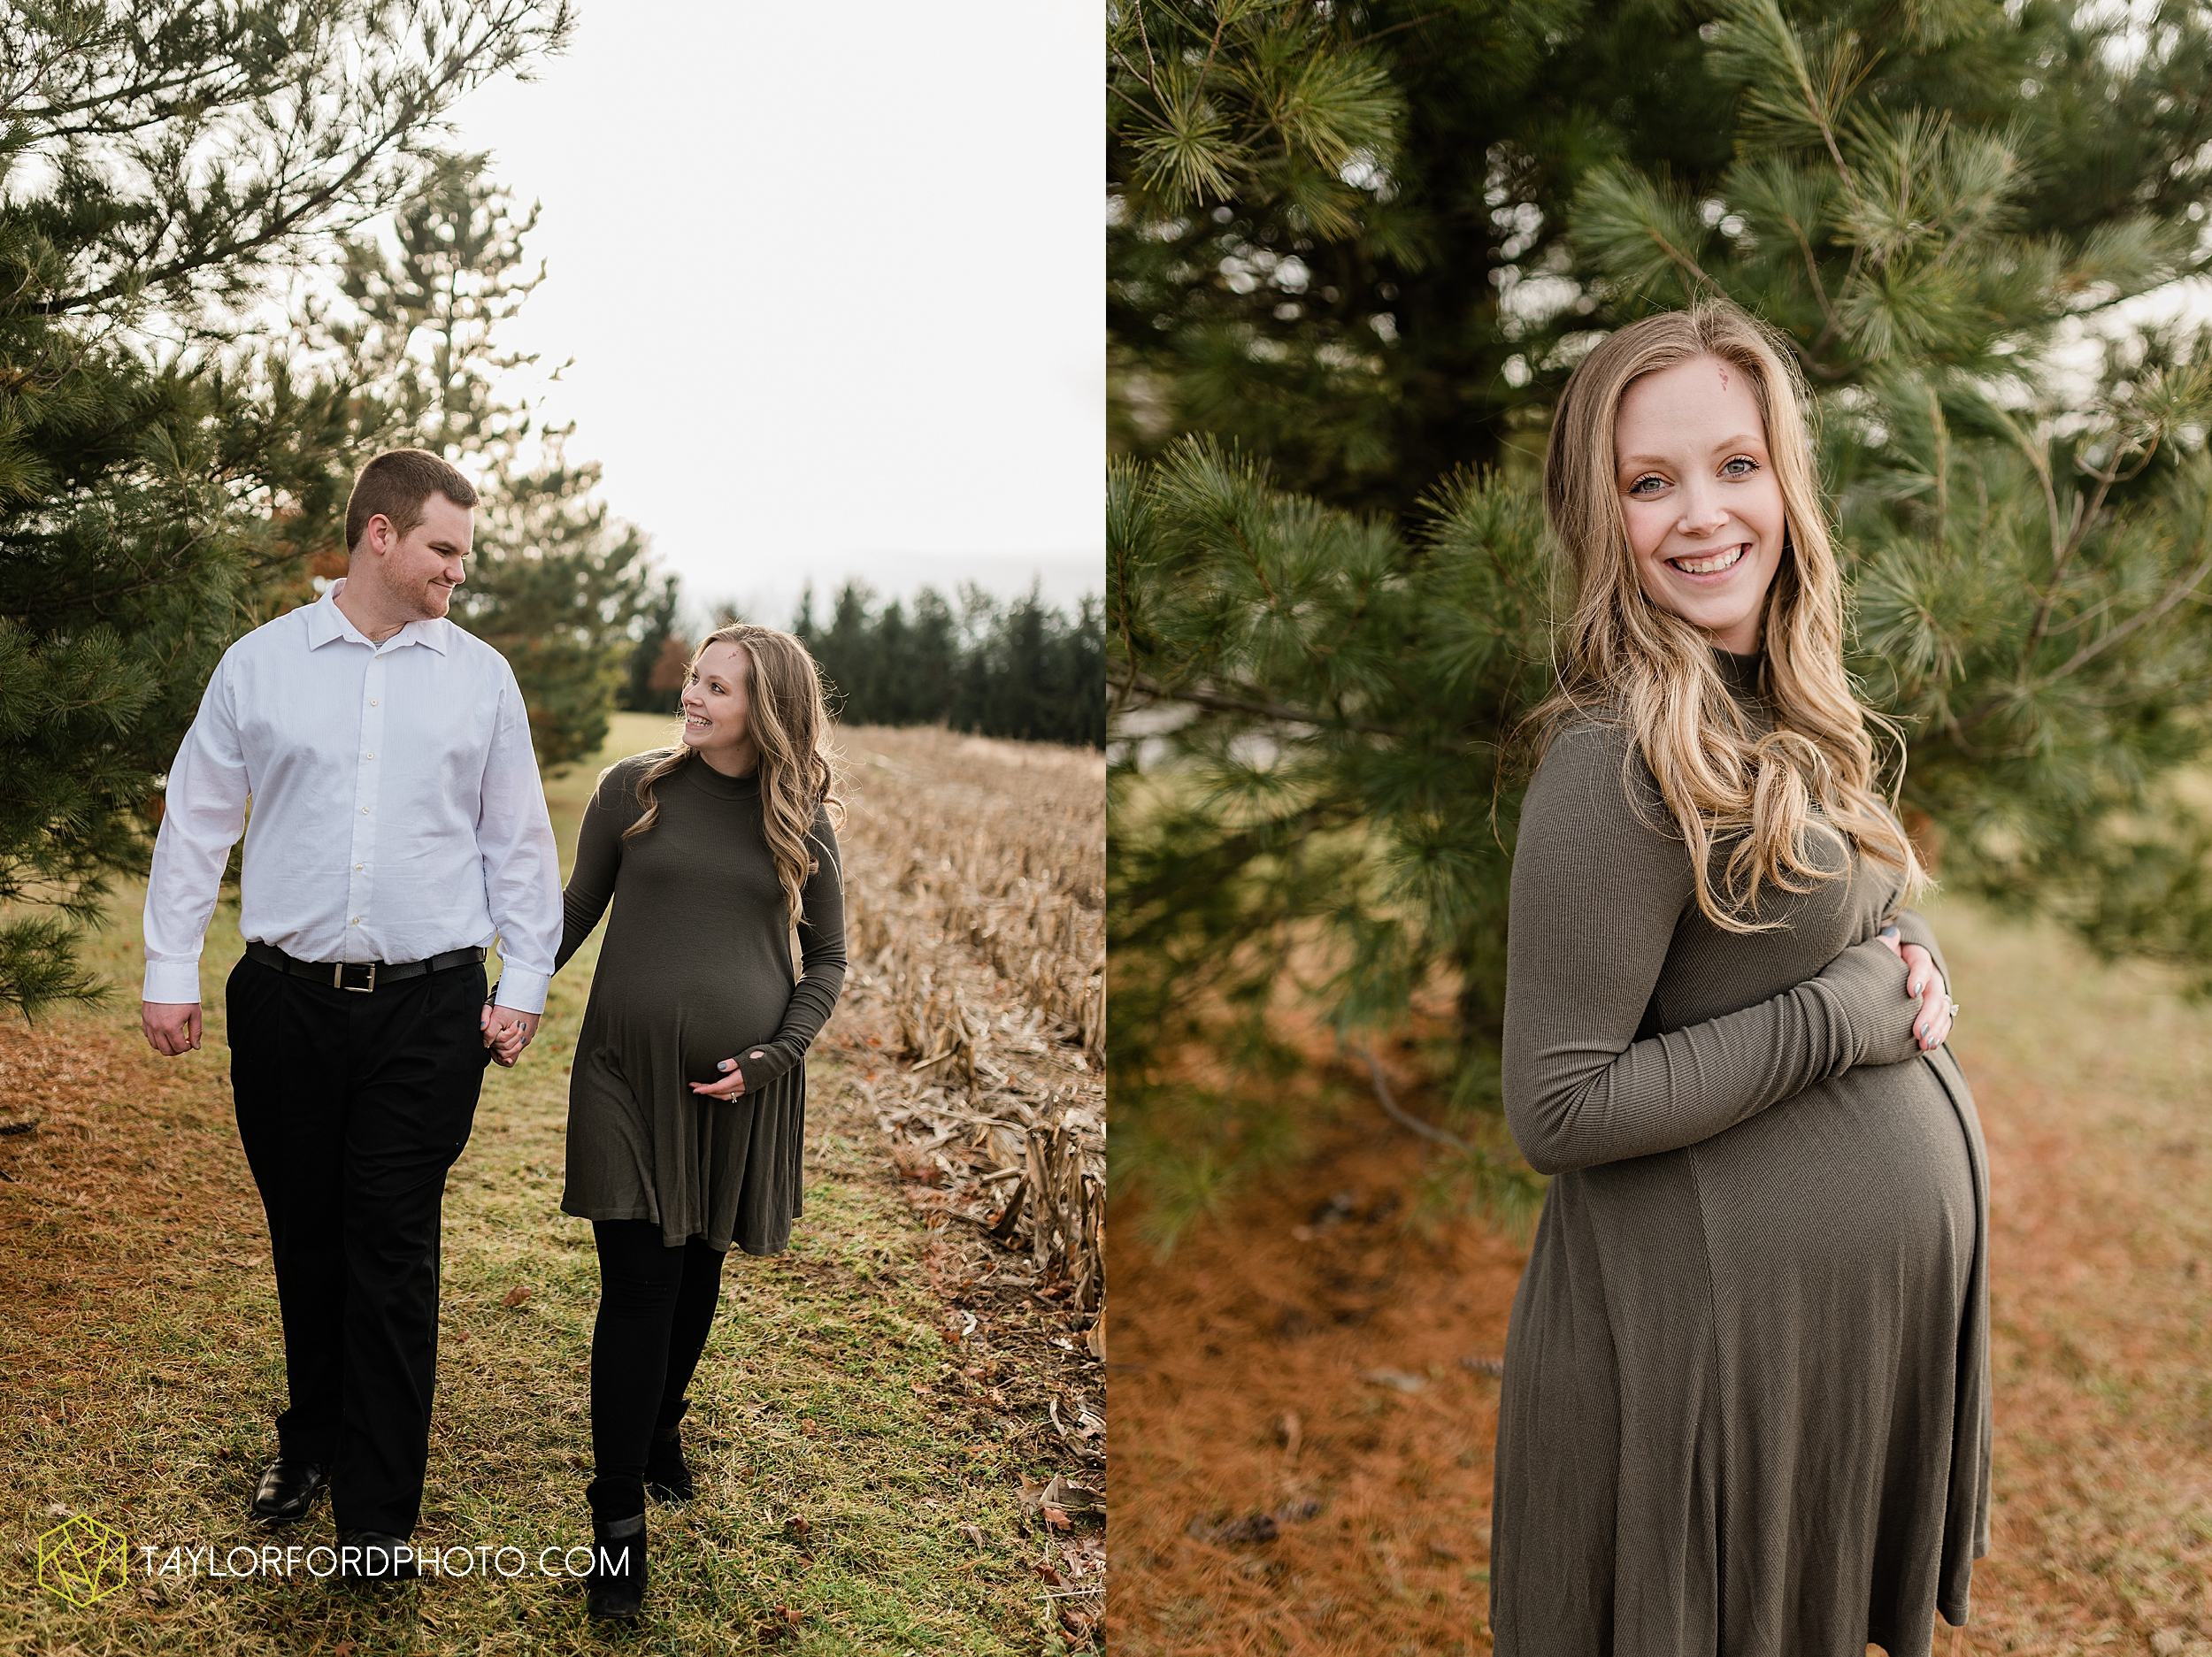 schafer-maternity-pregnant-at-home-fort-wayne-indiana-photography-taylor-ford-hirschy-photographer_2276.jpg